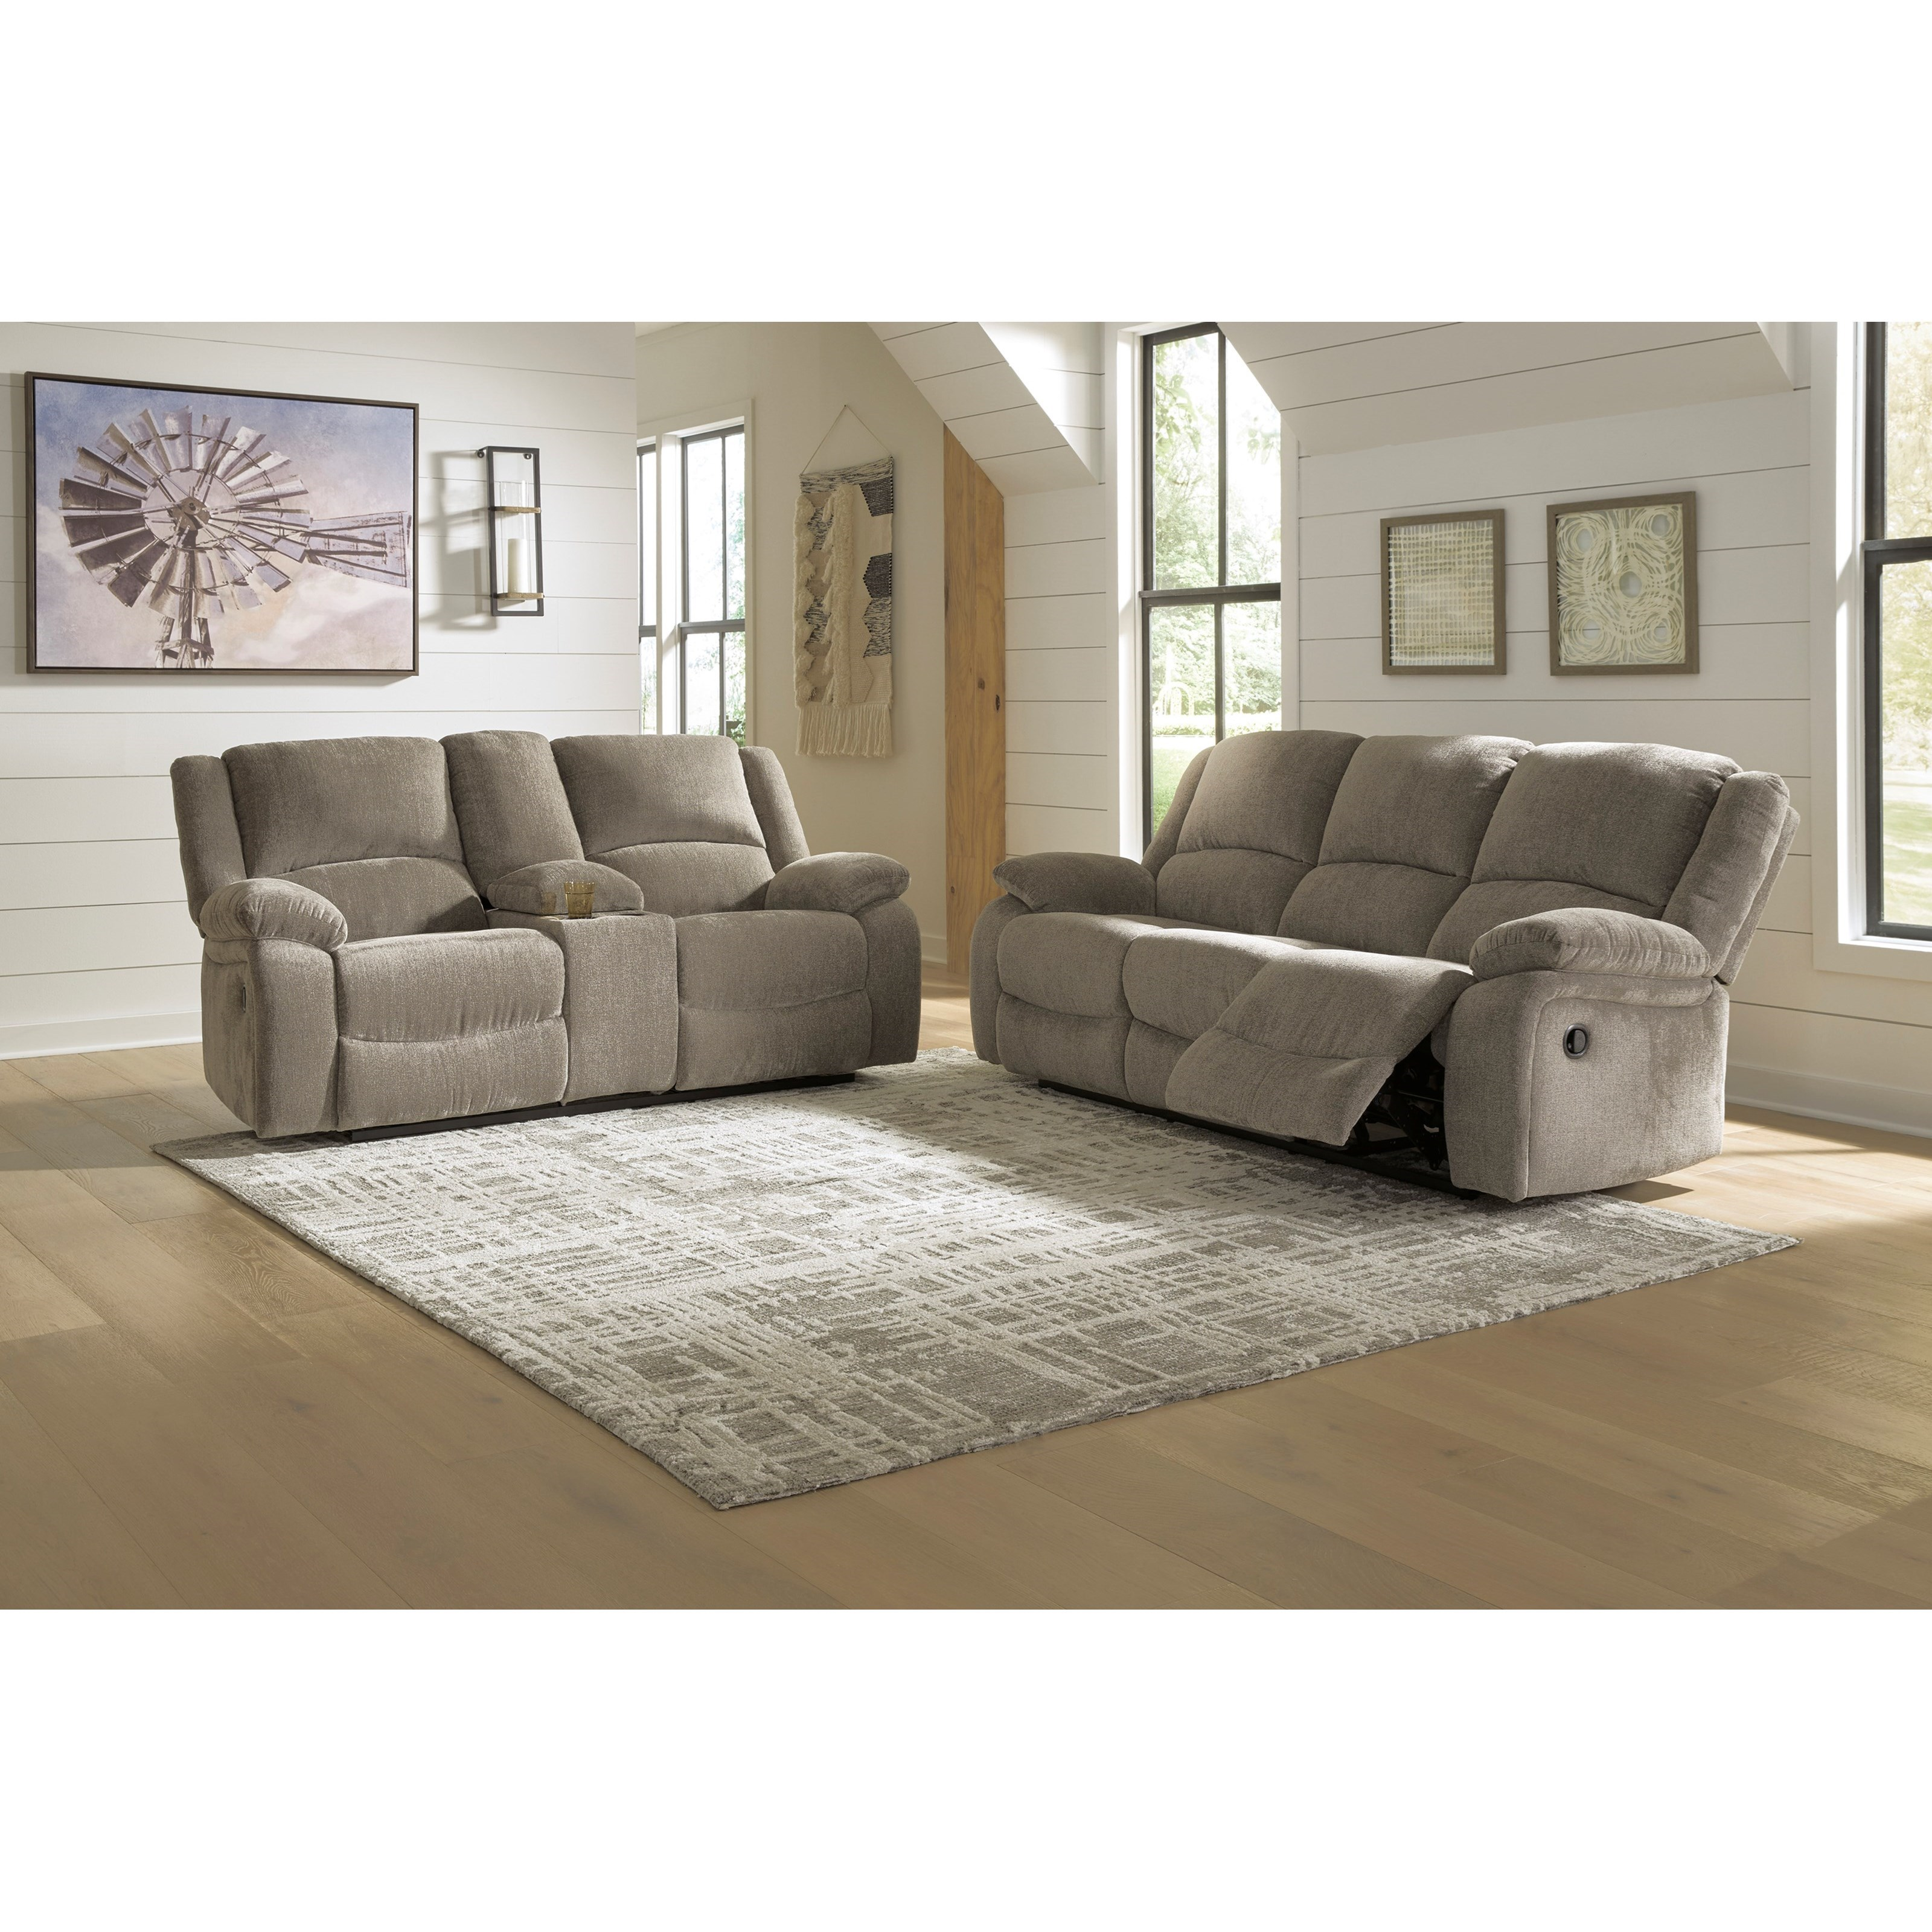 Draycoll Reclining Living Room Group by Signature Design by Ashley at Zak's Warehouse Clearance Center